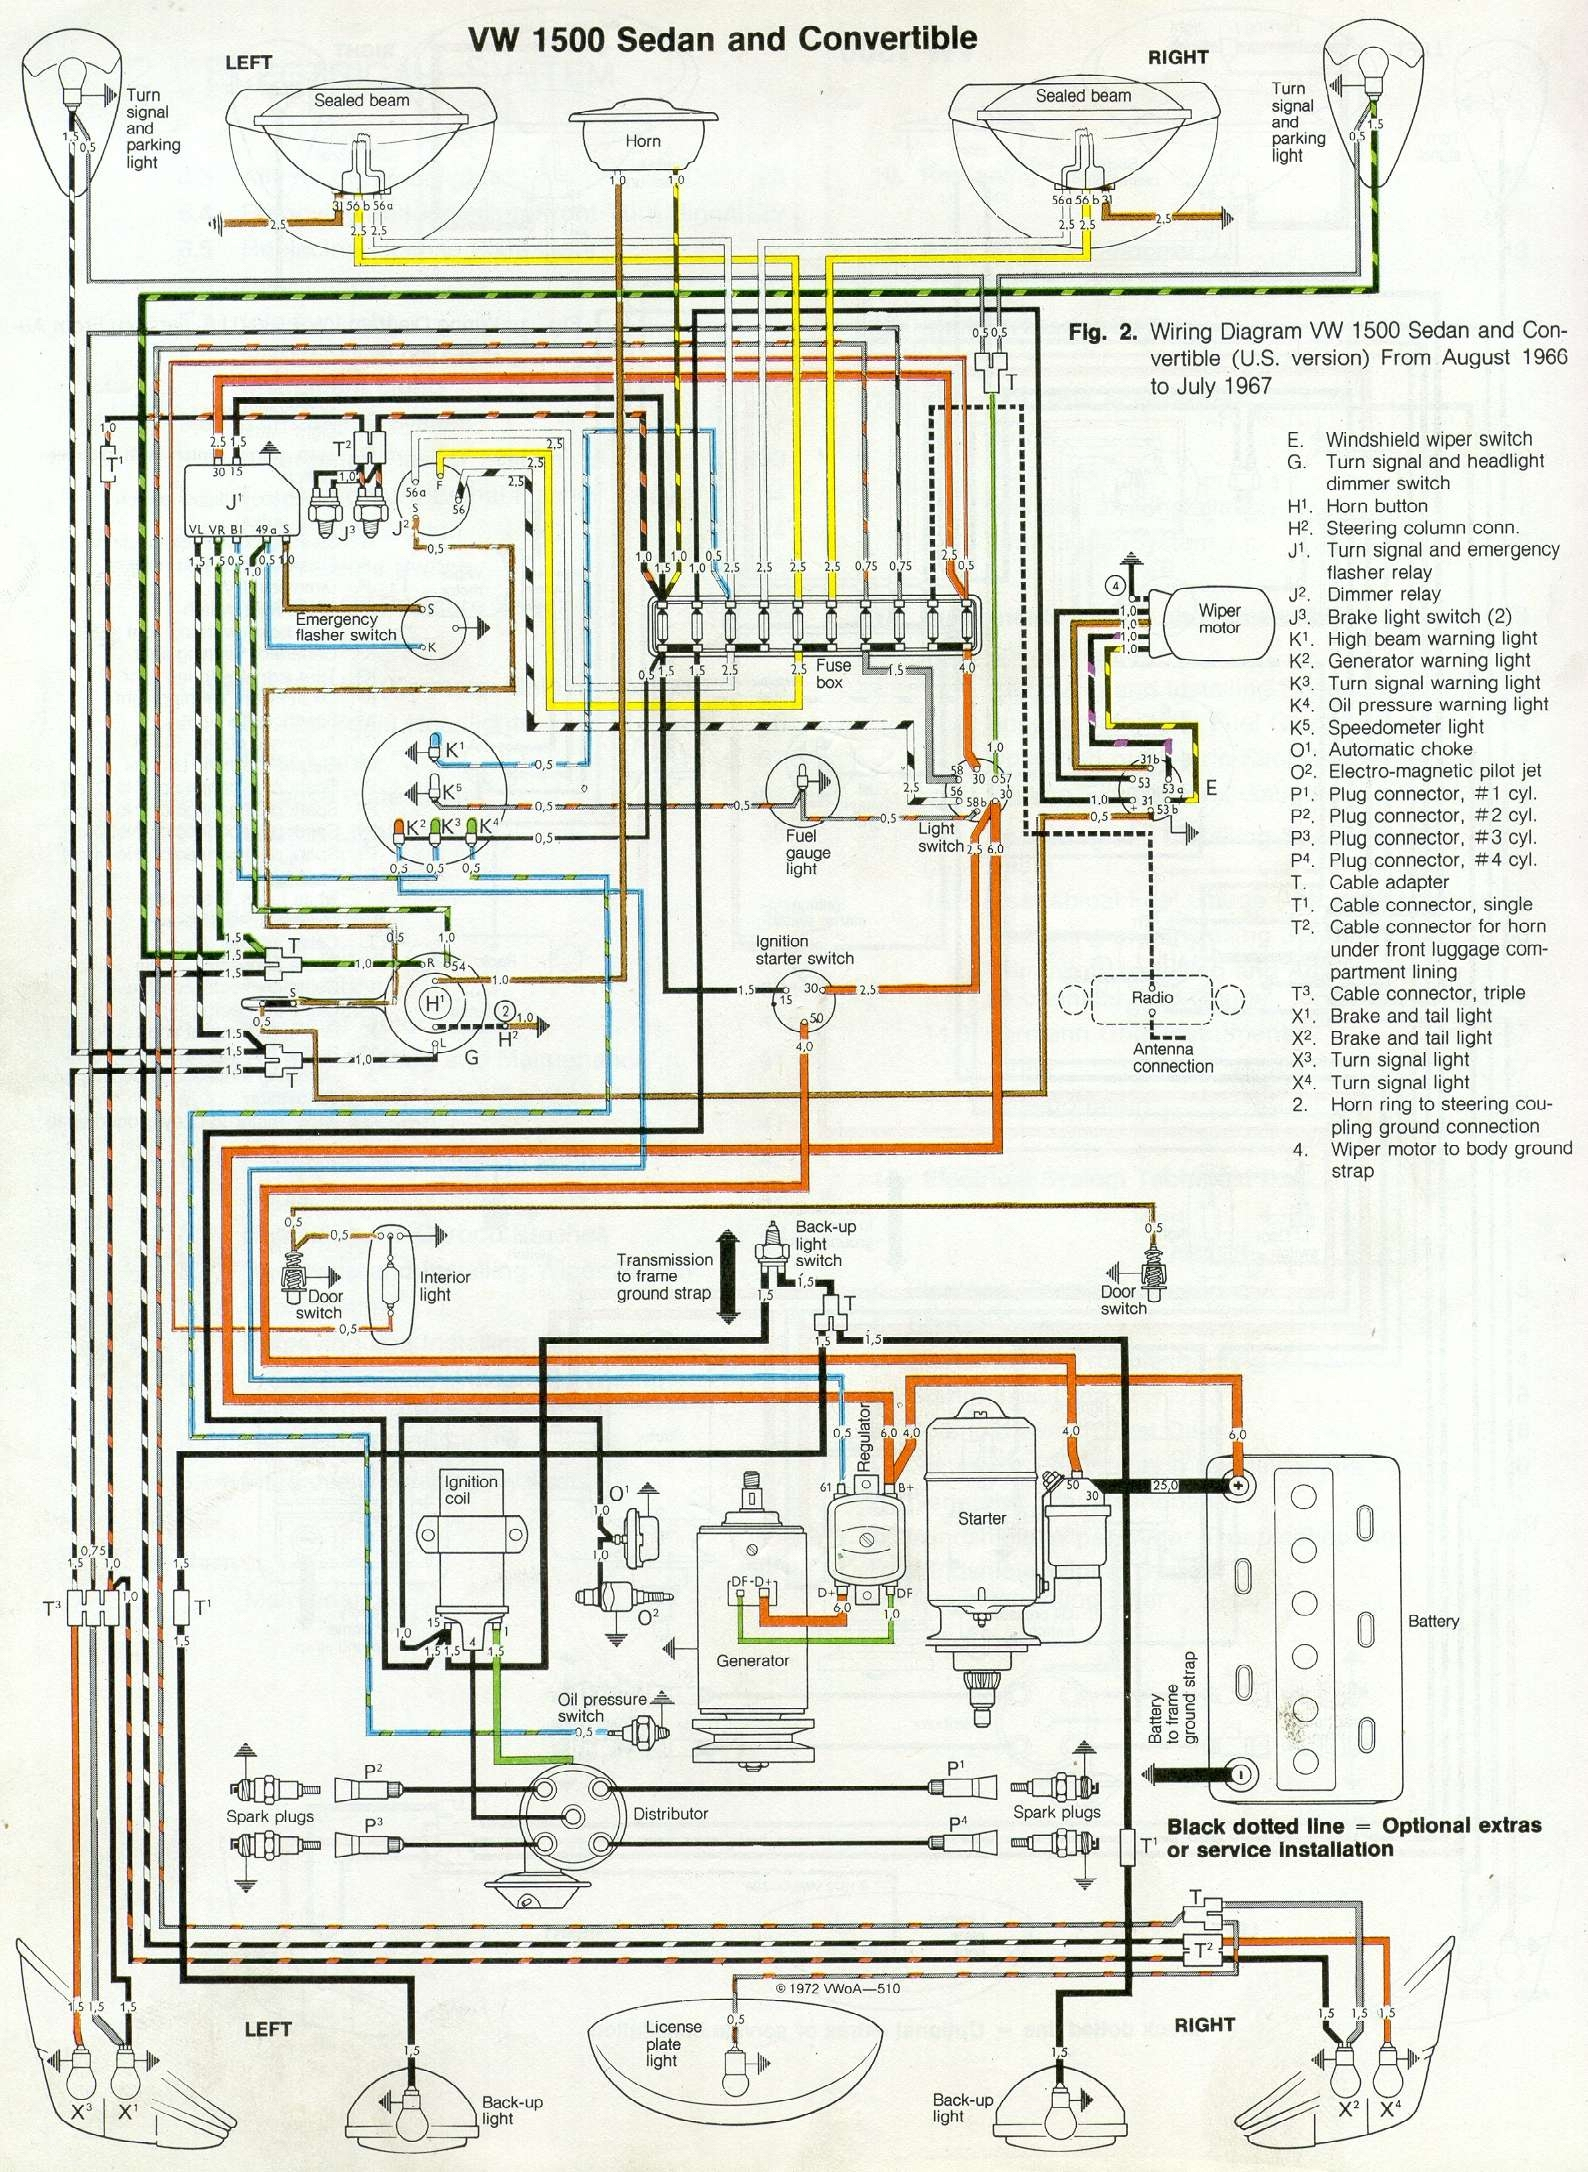 vw golf mk1 wiring diagram car harness 3966 and 3967 beetle 1967